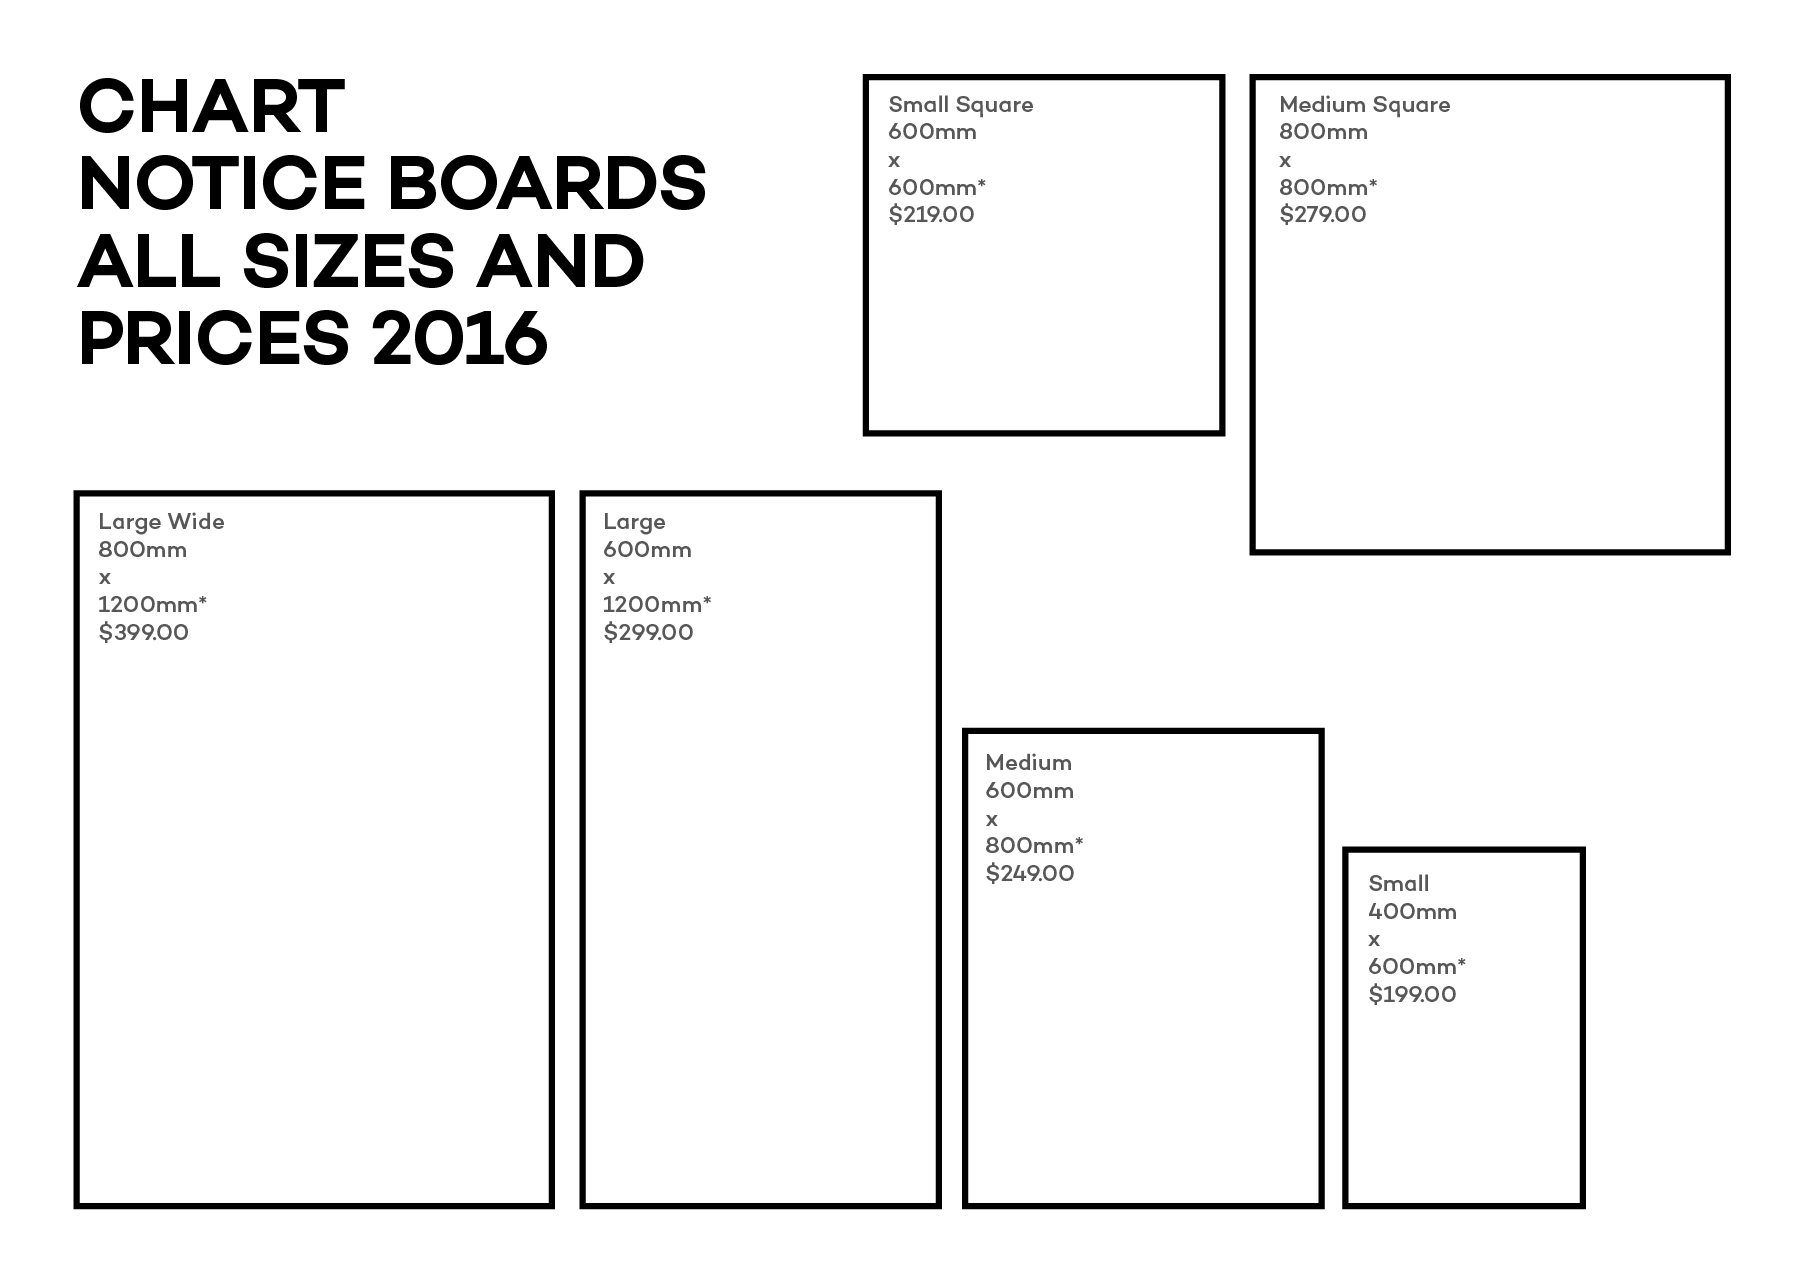 Chart board standard sizes and prices chart noticeboards for Standard electrical panel sizes